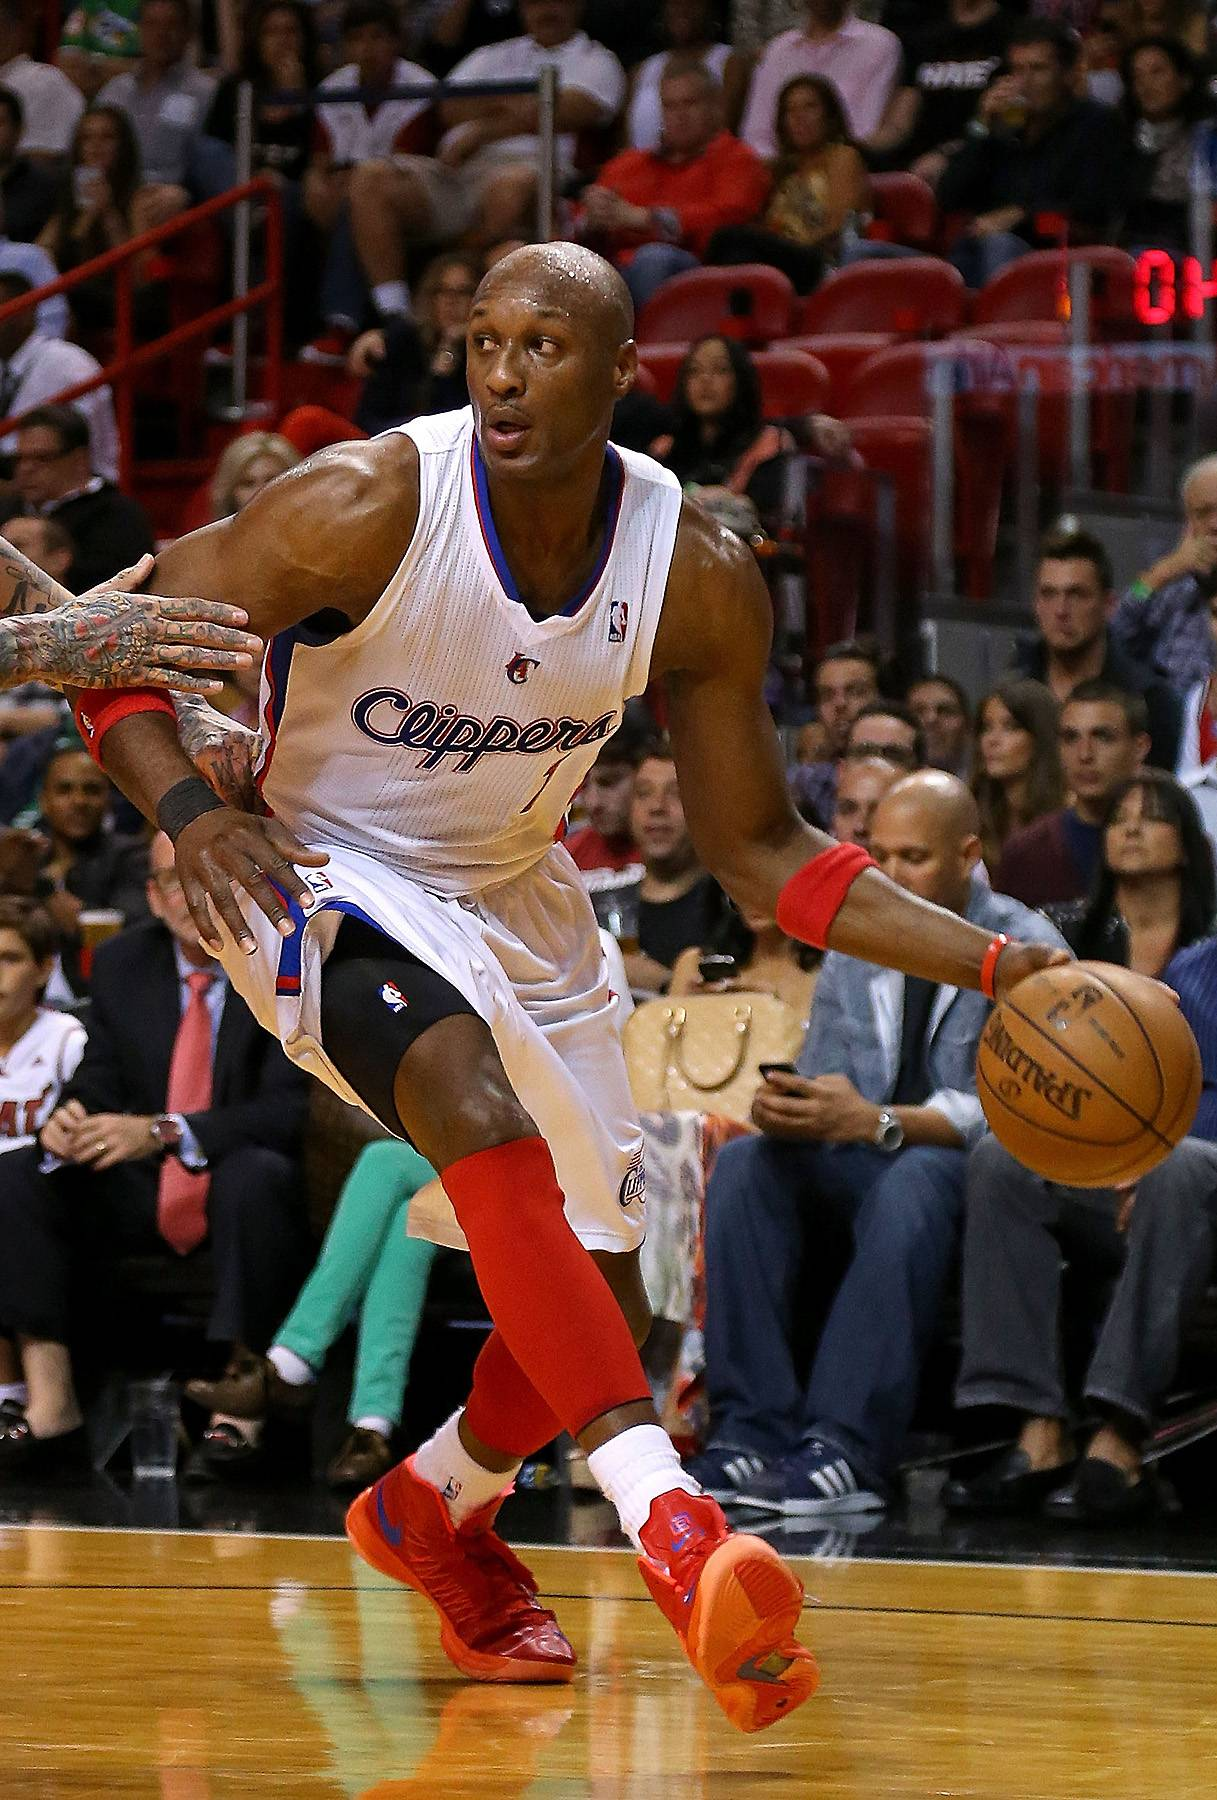 Back to the Clippers - After the career hiccup with the Mavericks, Odom became part of a four-team trade in 2012, which led him back to the Clippers. Following a dismal 2012-2013 season, however, the Queens, New York, native became a free agent again in 2013.(Photo: Mike Ehrmann/Getty Images)